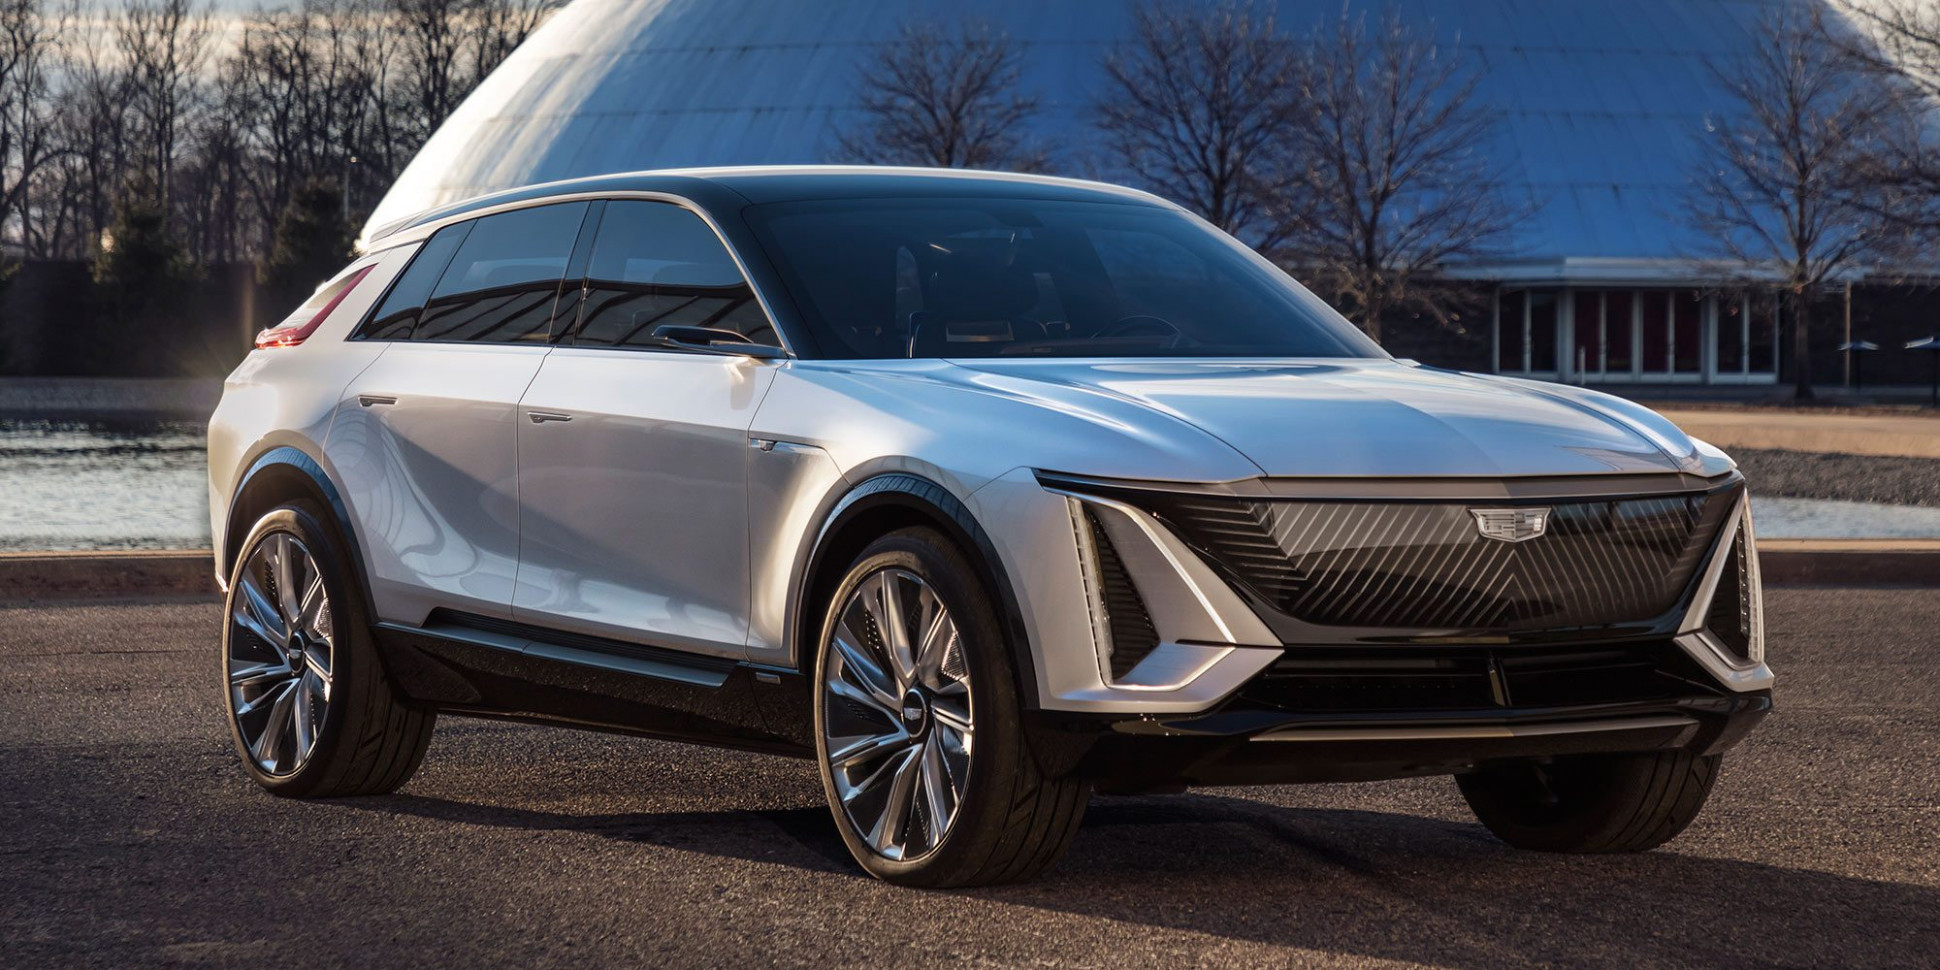 Configurations When Will The 2022 Cadillac Xt5 Be Available